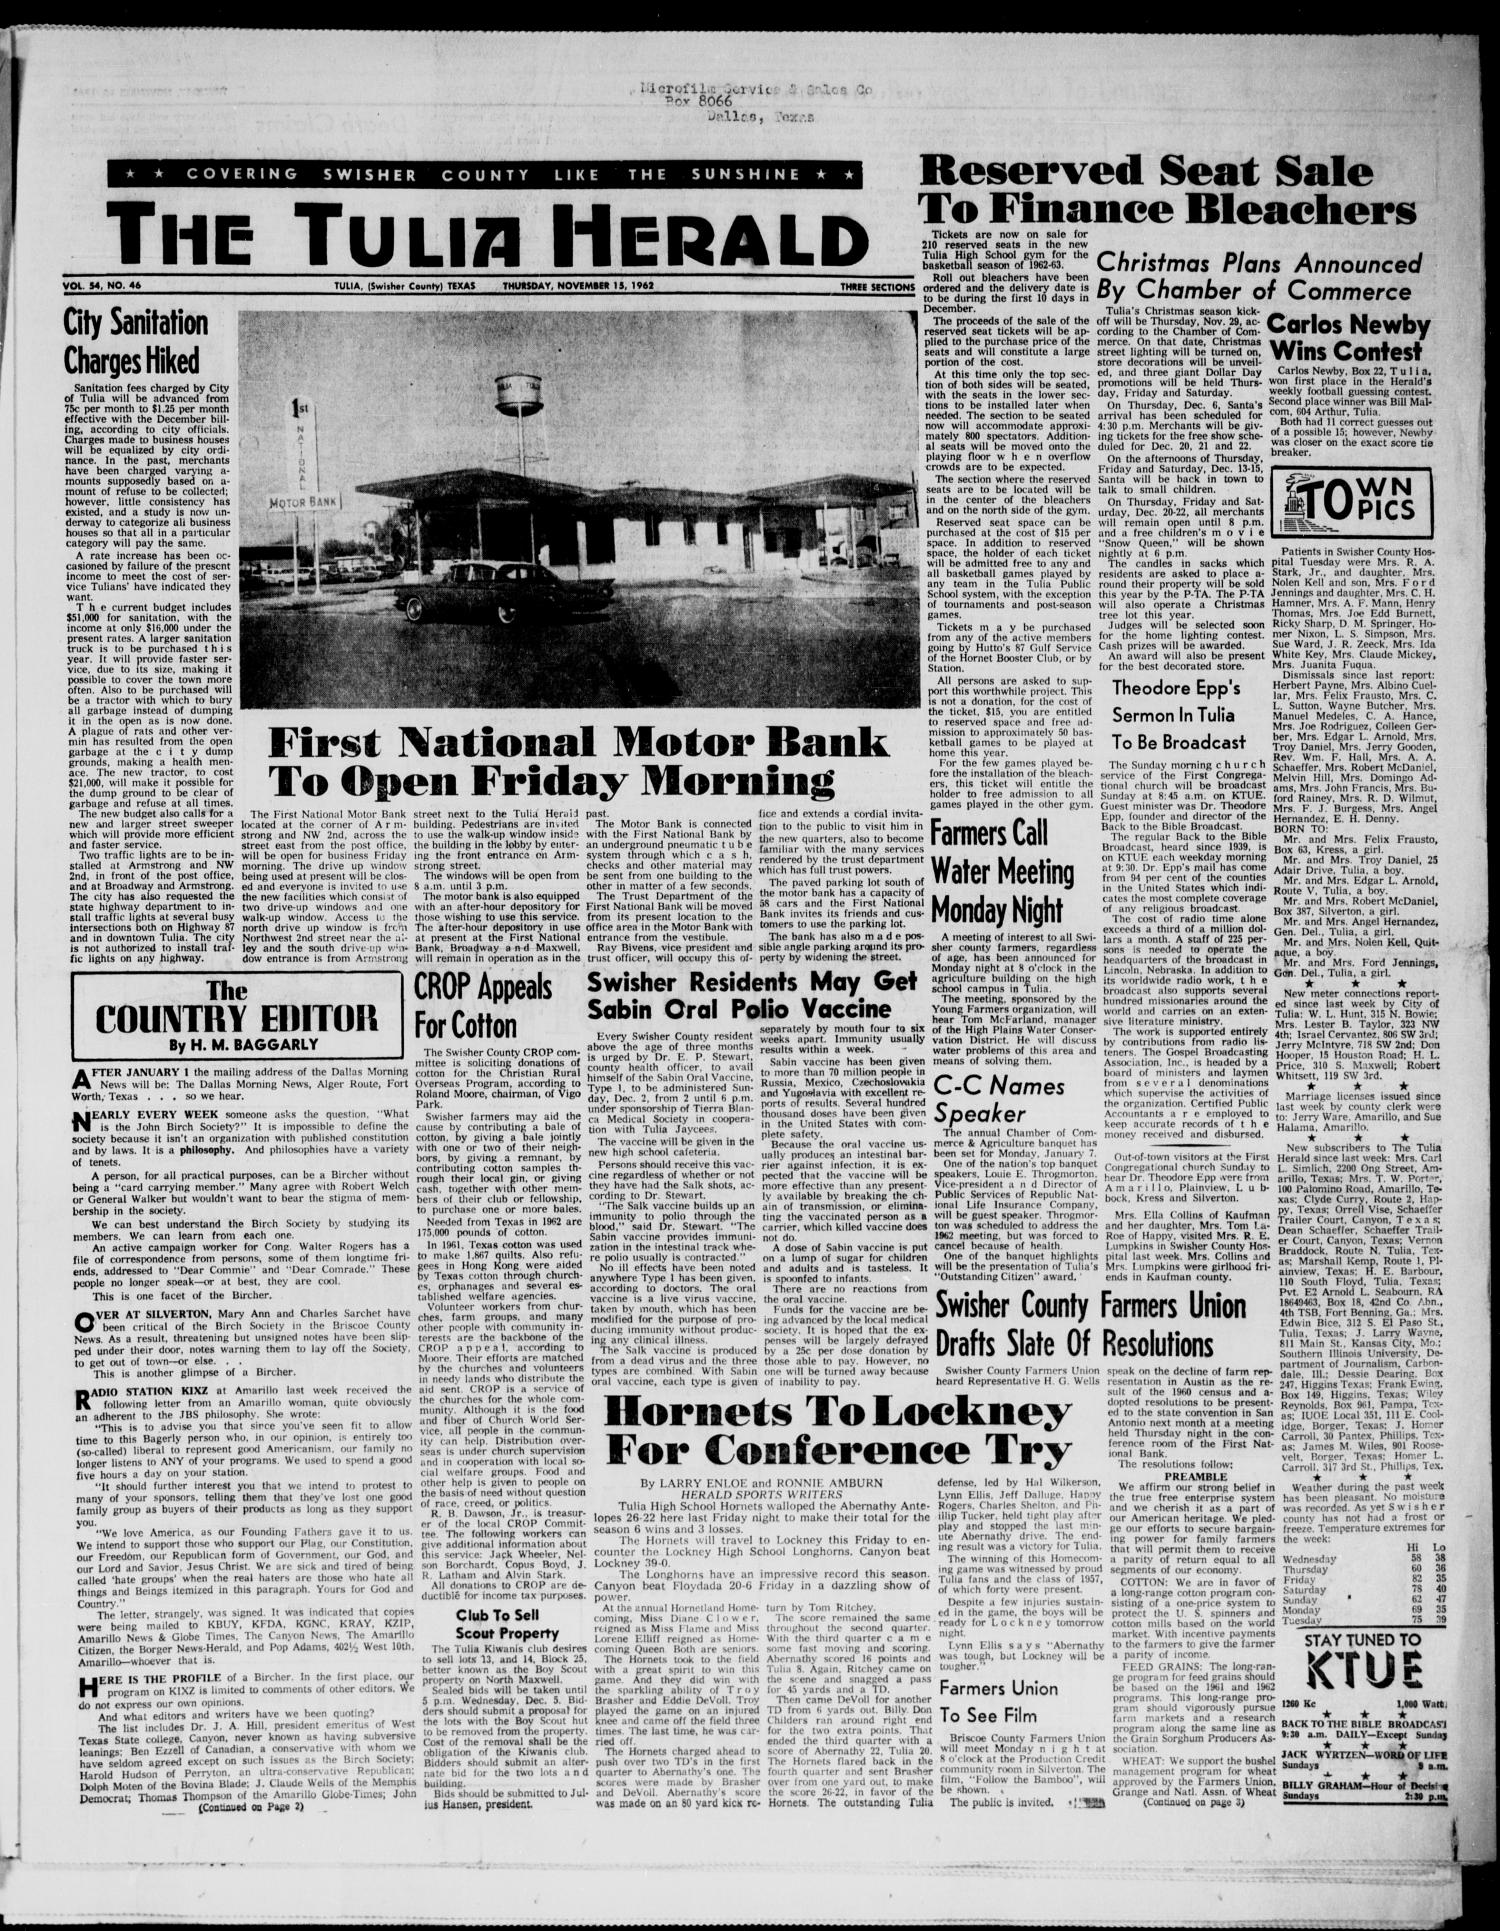 The Tulia Herald (Tulia, Tex), Vol. 54, No. 46, Ed. 1, Thursday, November 15, 1962                                                                                                      1